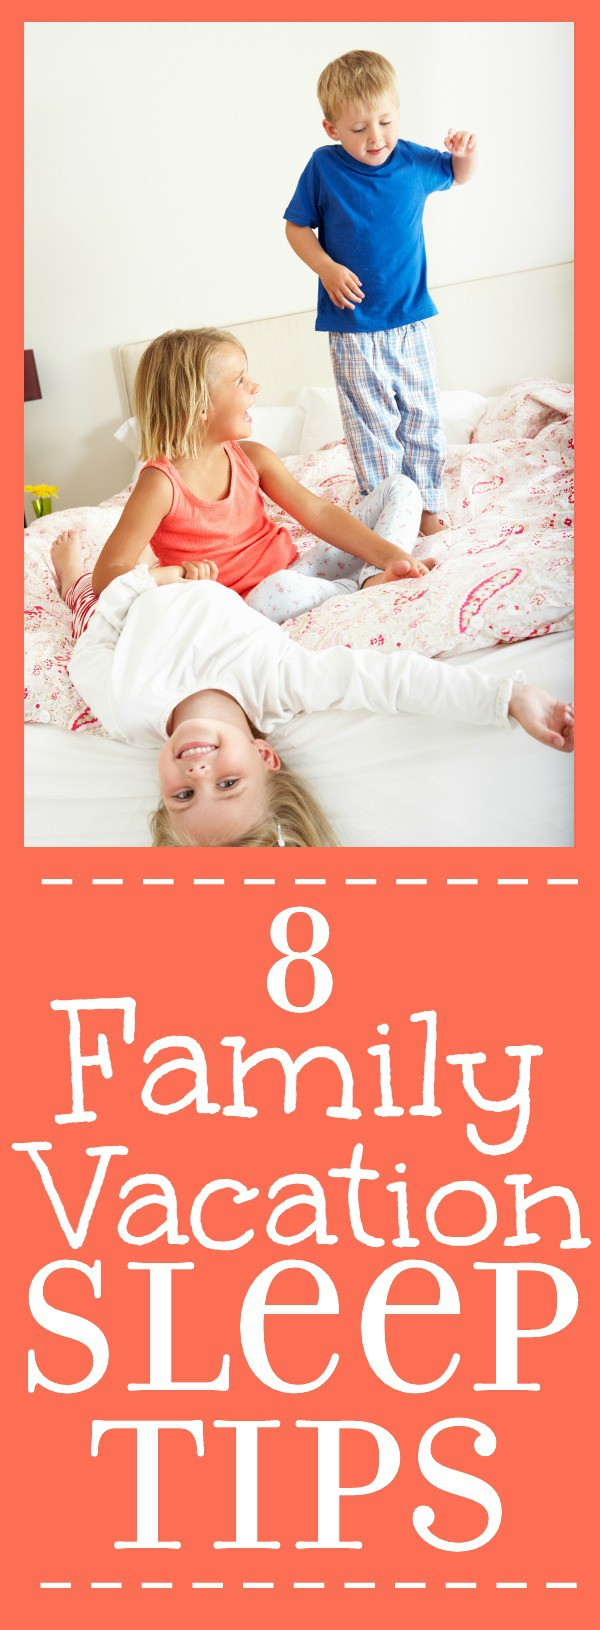 Tips for getting sleep and staying rested while on vacation with kids for a fabulous family vacation. Use these 8 Tips for Making Sure the Whole Family Sleeps Well on Vacation to keep the whole family happy, rested, and having fun for your vacation this year!